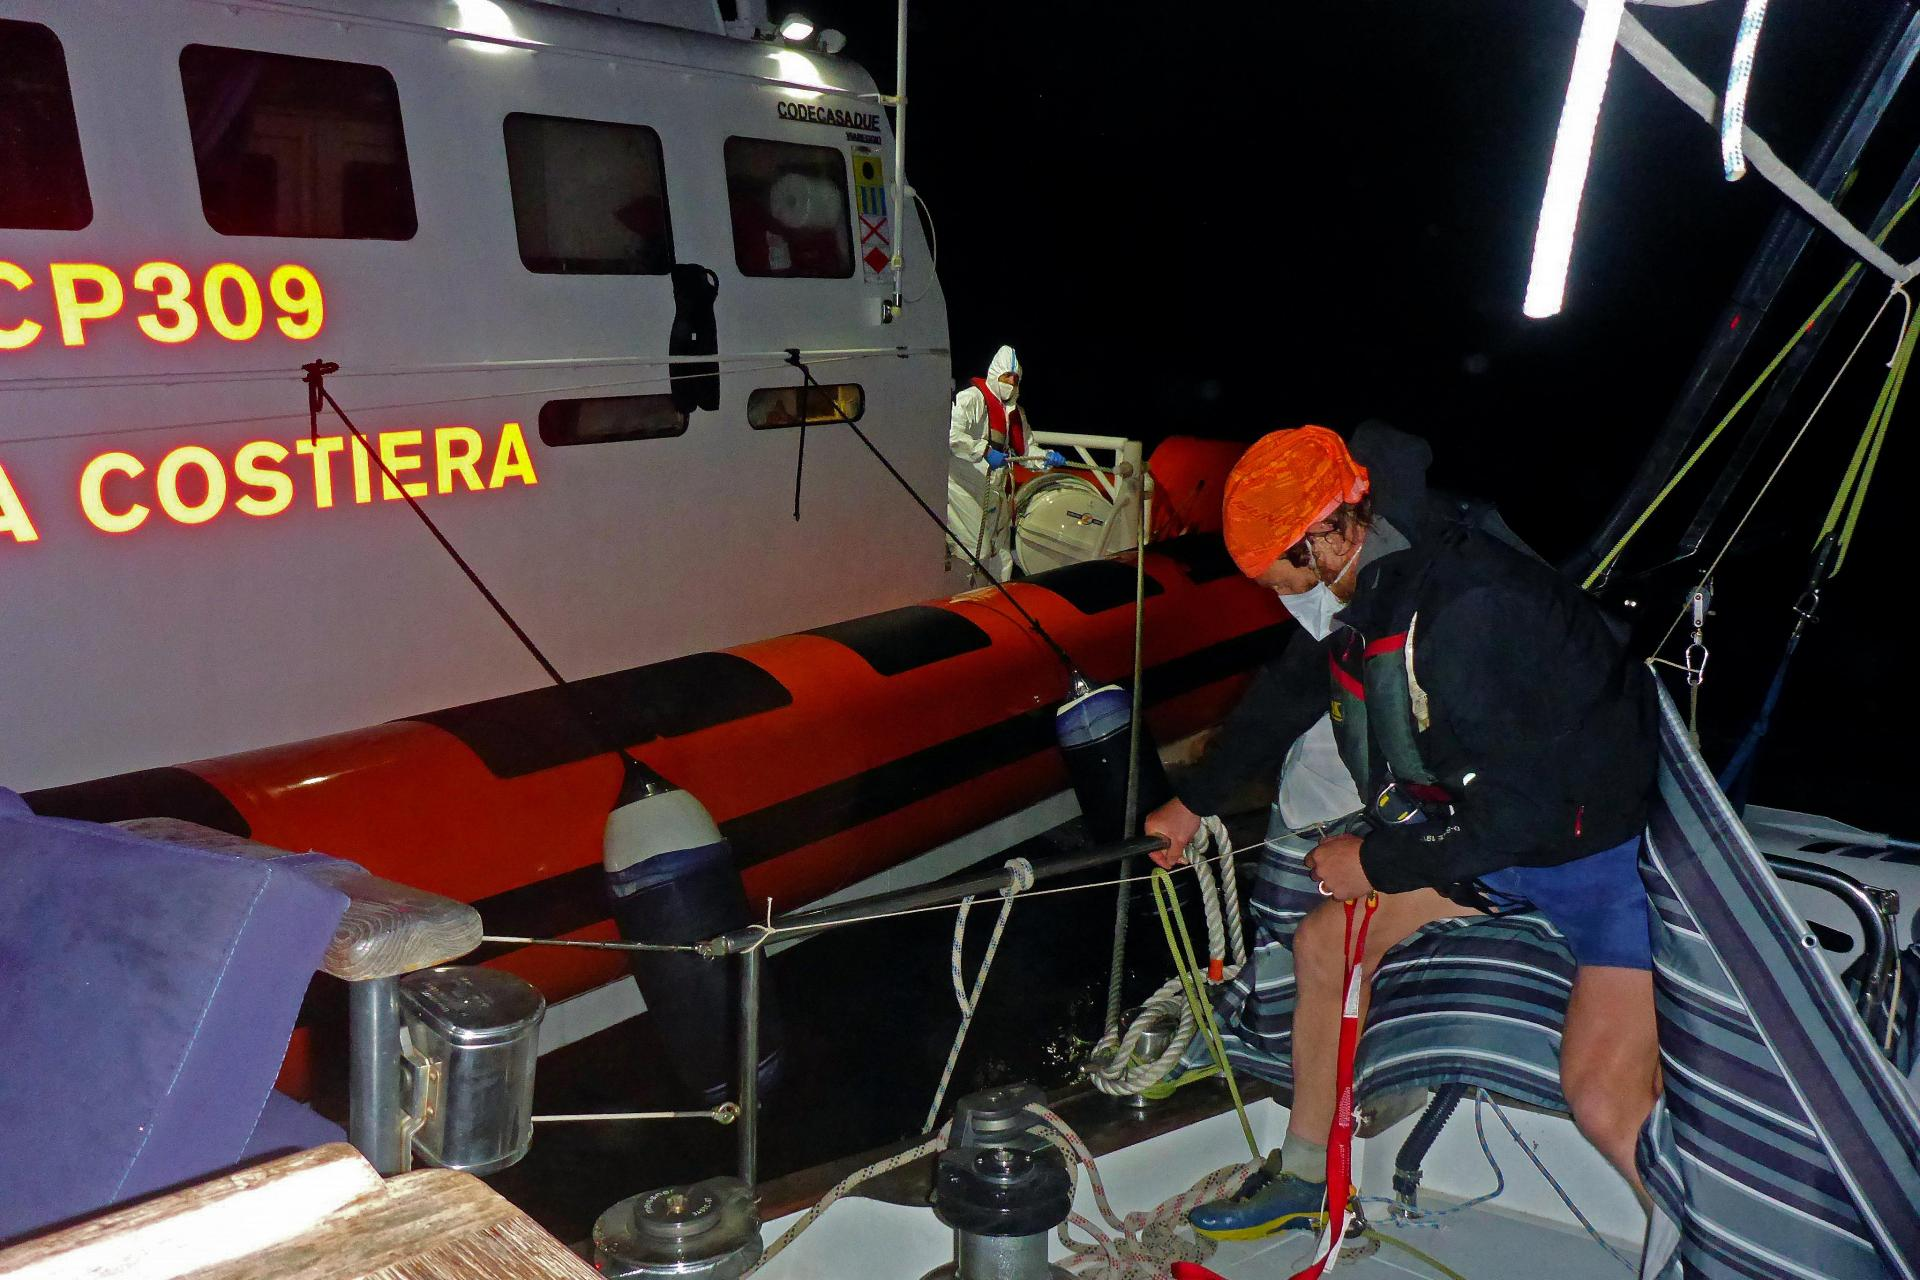 The Italian Coastguard arrived in the early hours of Thursday morning to conduct the rescue. Credit: Resquship